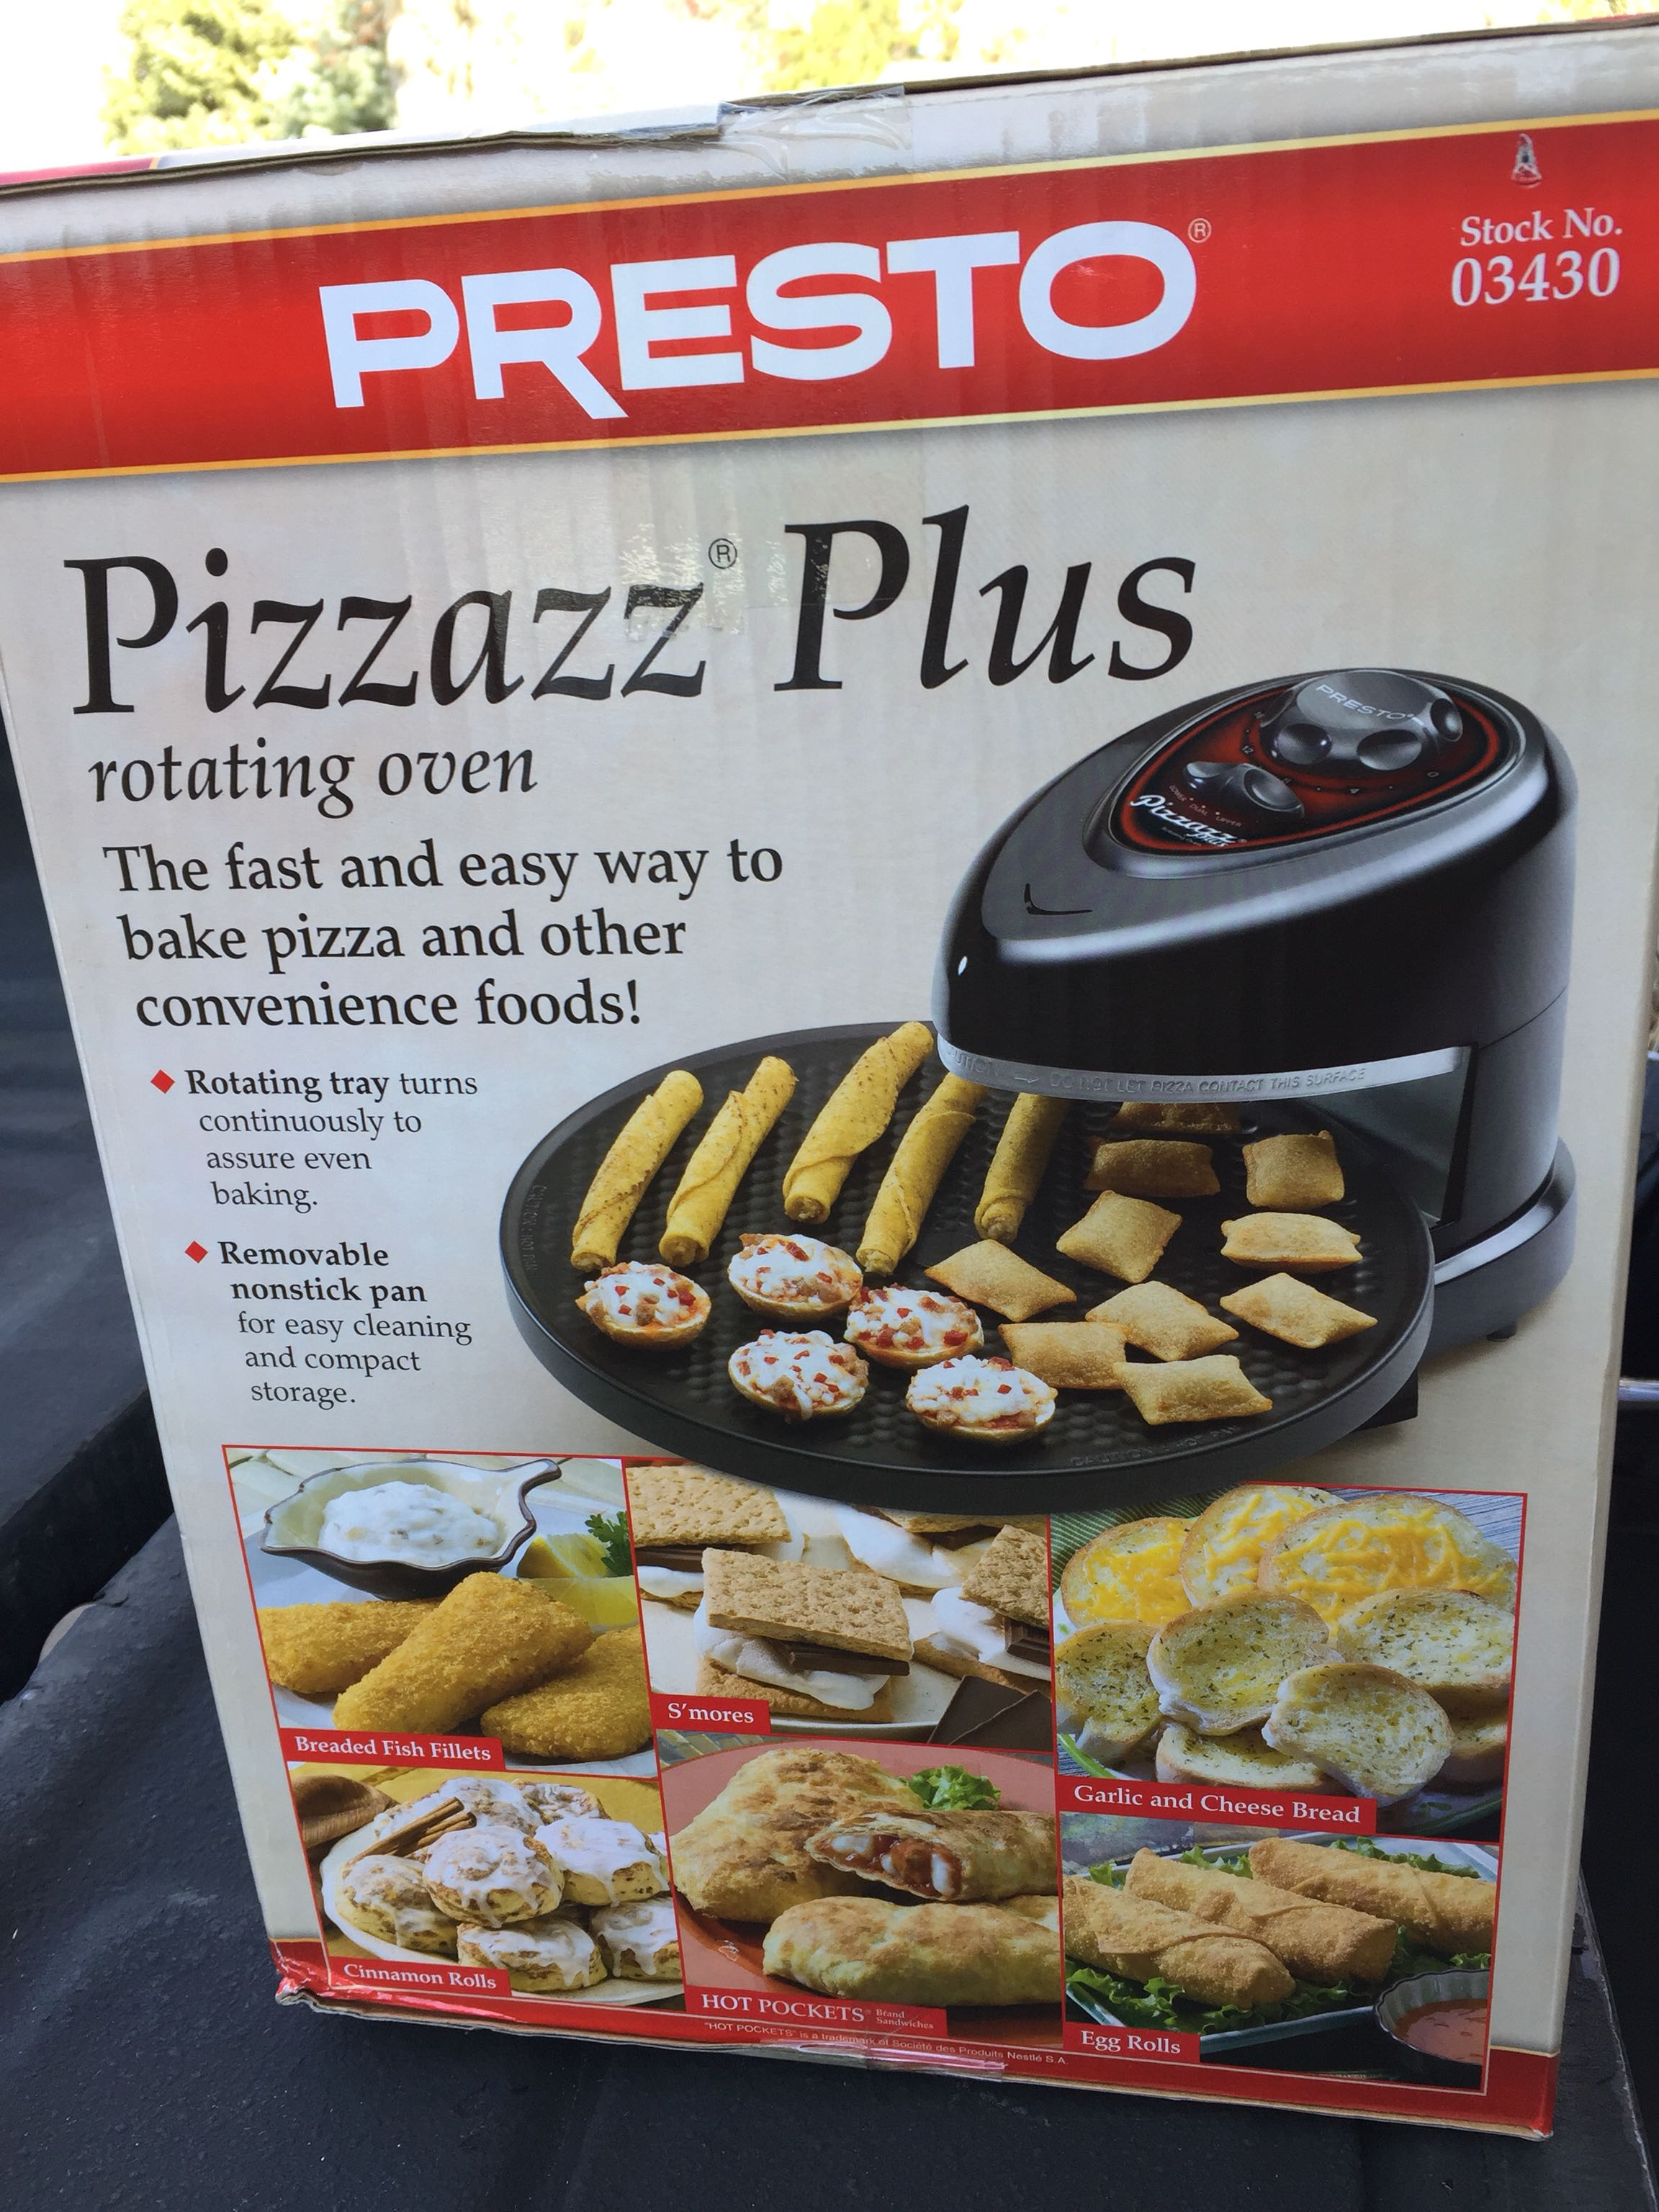 Pizzazz plus pizza maker and rotating oven